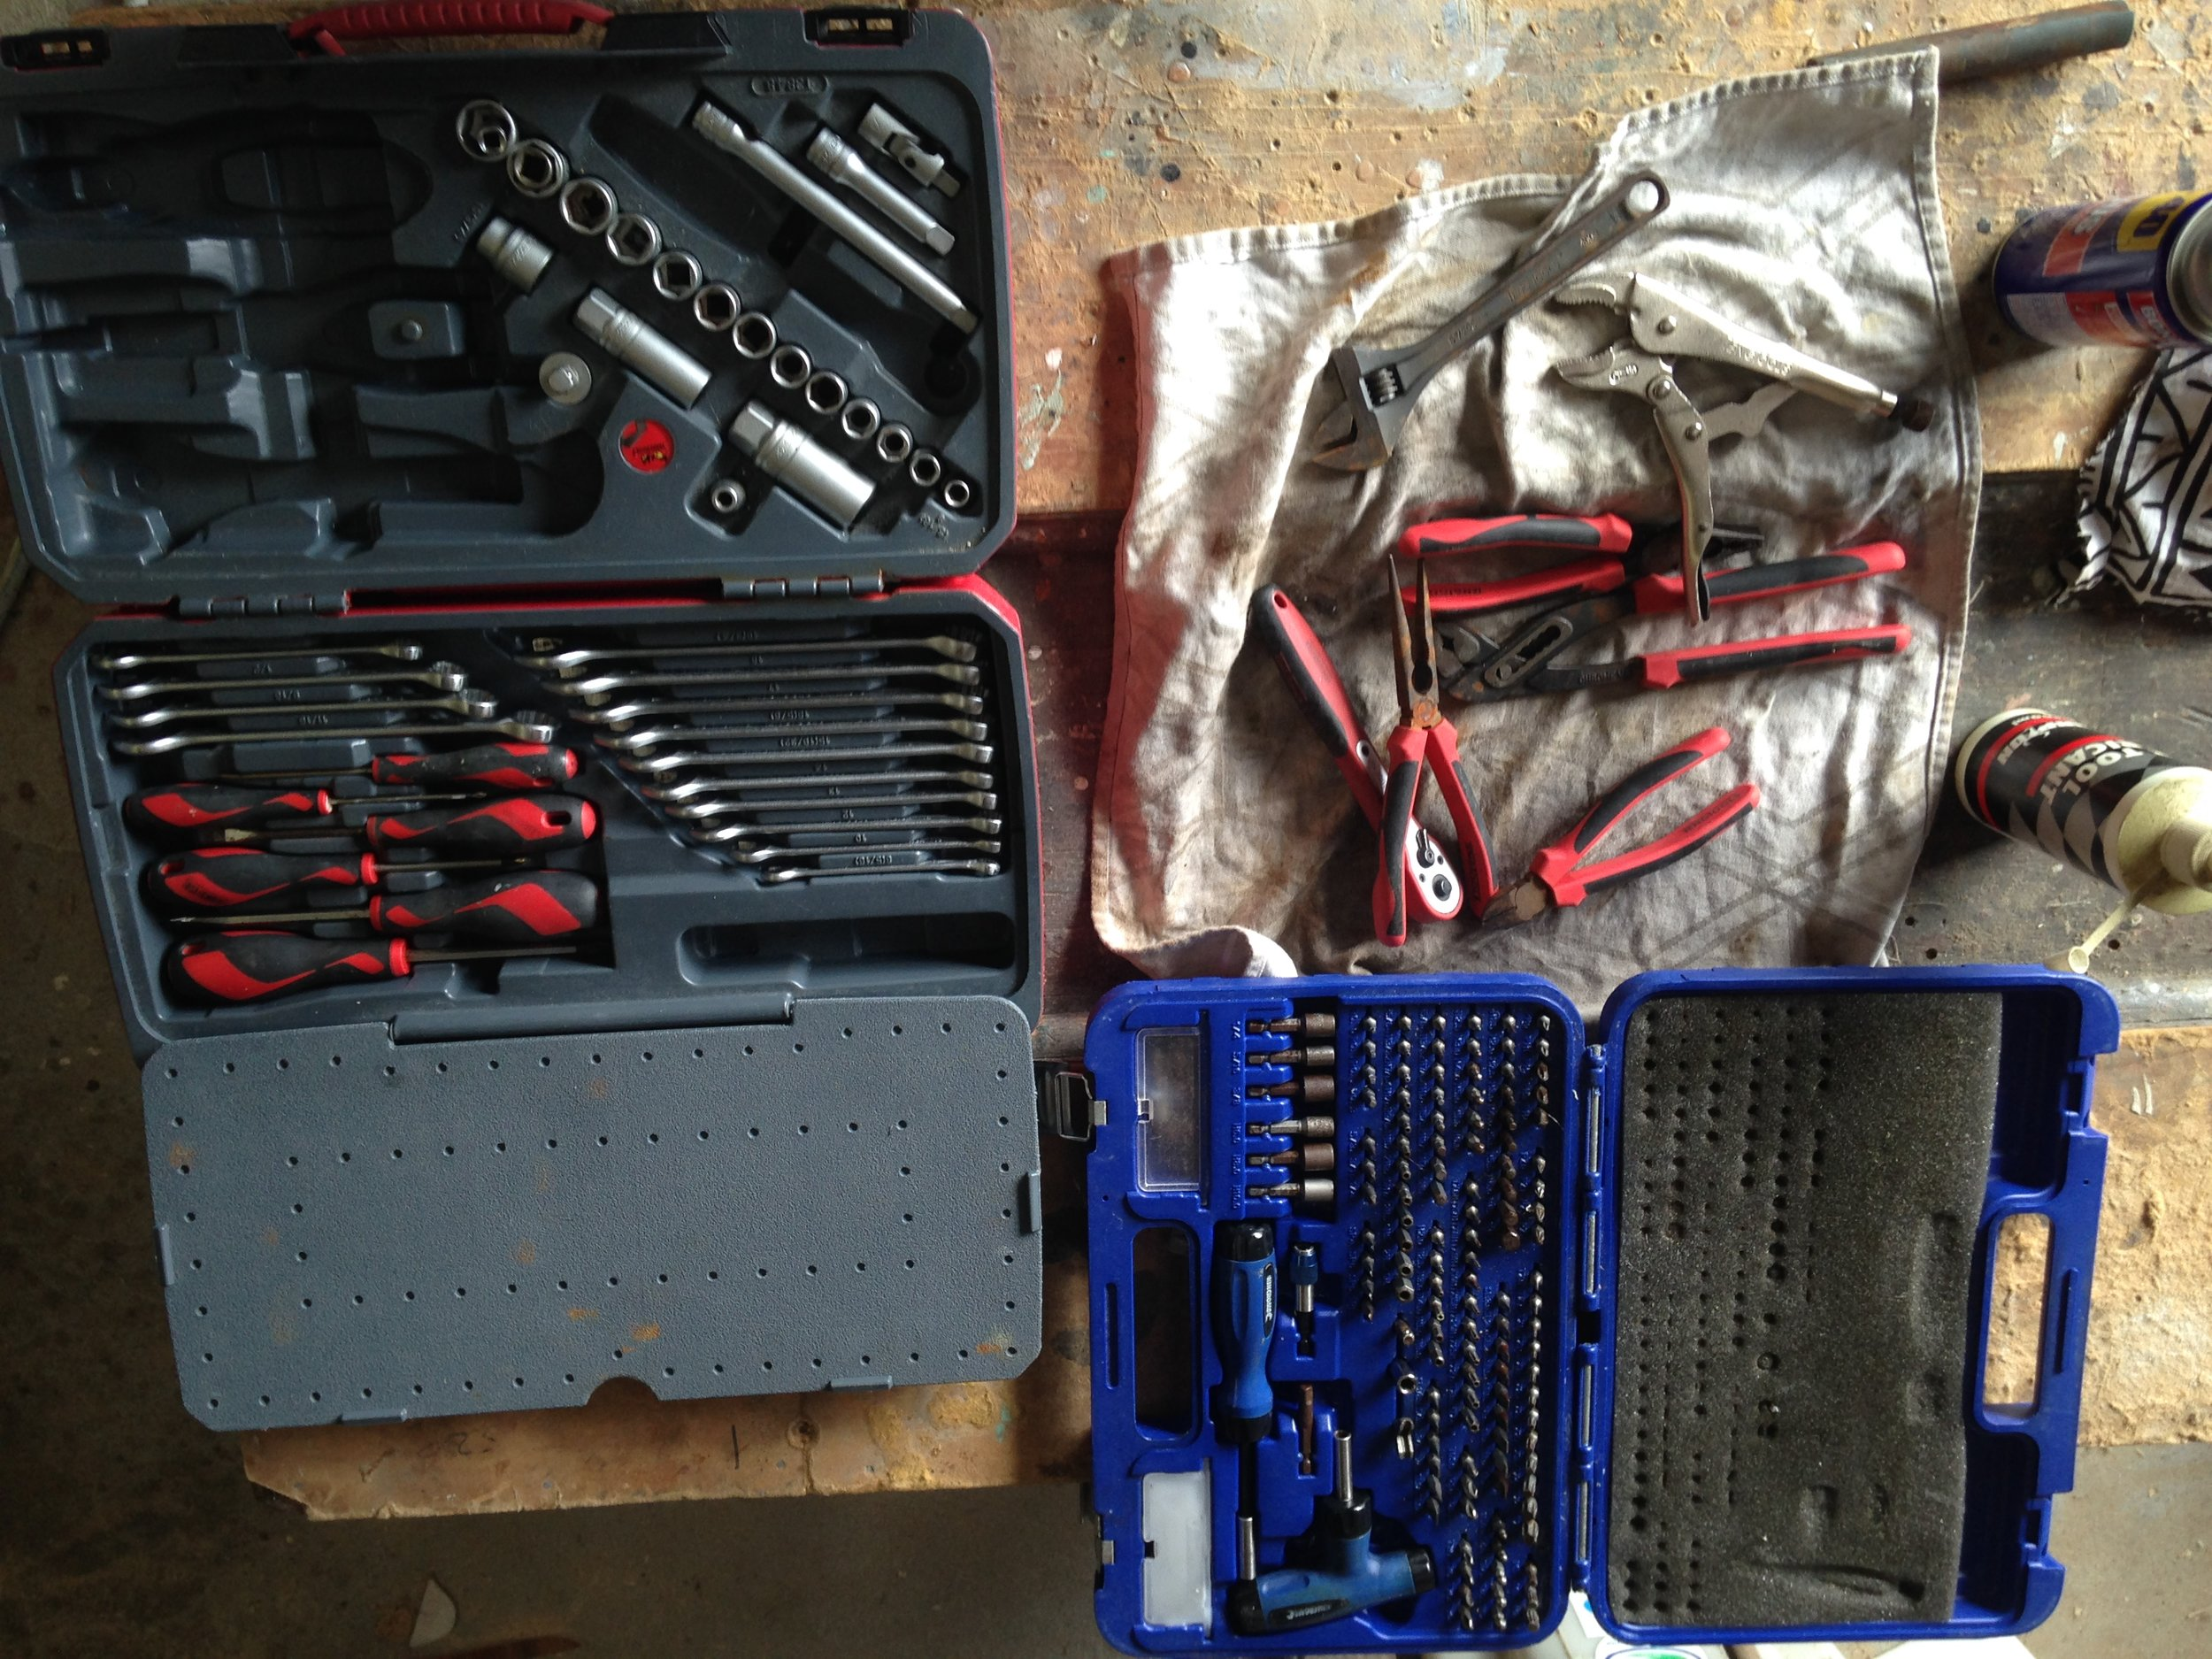 """I think I kept my eye out for the right tool kits for about 4 years before deciding on these ones. The one on the left is a 1/2"""" drive Metric and Imperial kit from Teng Tools (8mm - 19mm). It covers 95% of all the fasteners onboard. There are a couple of smaller sockets and one bigger one that I have loose in there for a couple specialty jobs. 7mm Hex Machine screws on the engine water pumps and a large 22mm socket holding the props on etc.  On the Right is what I call the """"everything everything"""" driver set. Its got you covered for the unexpected non standard fastener as well as full size ranges of all the standard stuff. Its from Kincrome.  Both of the kits have hit the mark for being decent quality without being crazy expensive and with semi regualr bath of WD40/Lanox/air tool oil they are holding up in the marine environment OK. They are getting a spring clean when this photo was taken."""